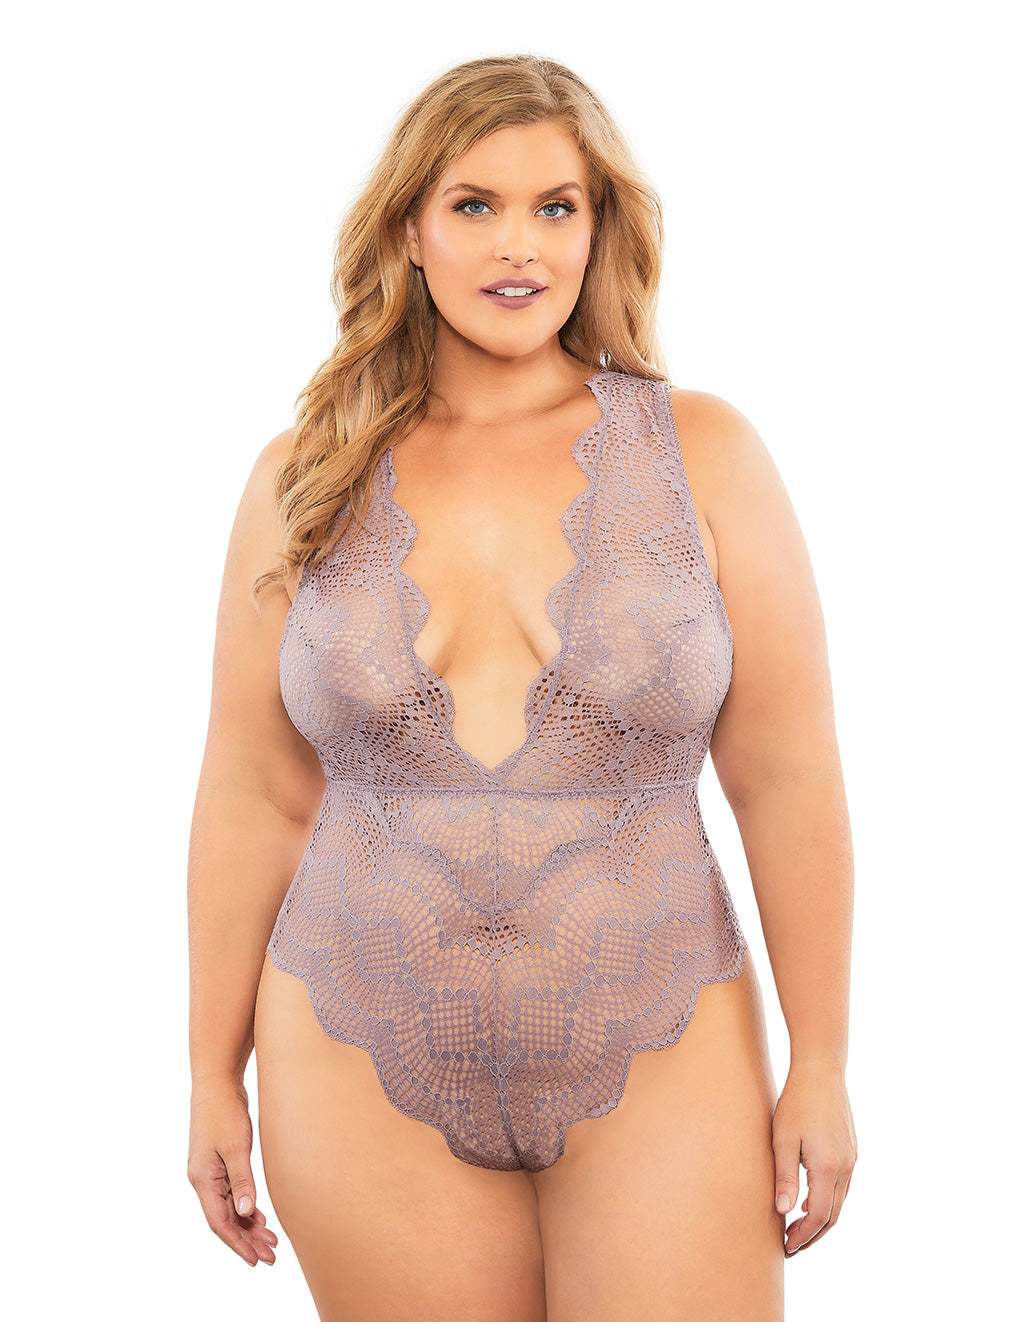 Oh La La Cheri Striped Lace Plunge Teddy Purple Front Plus Size